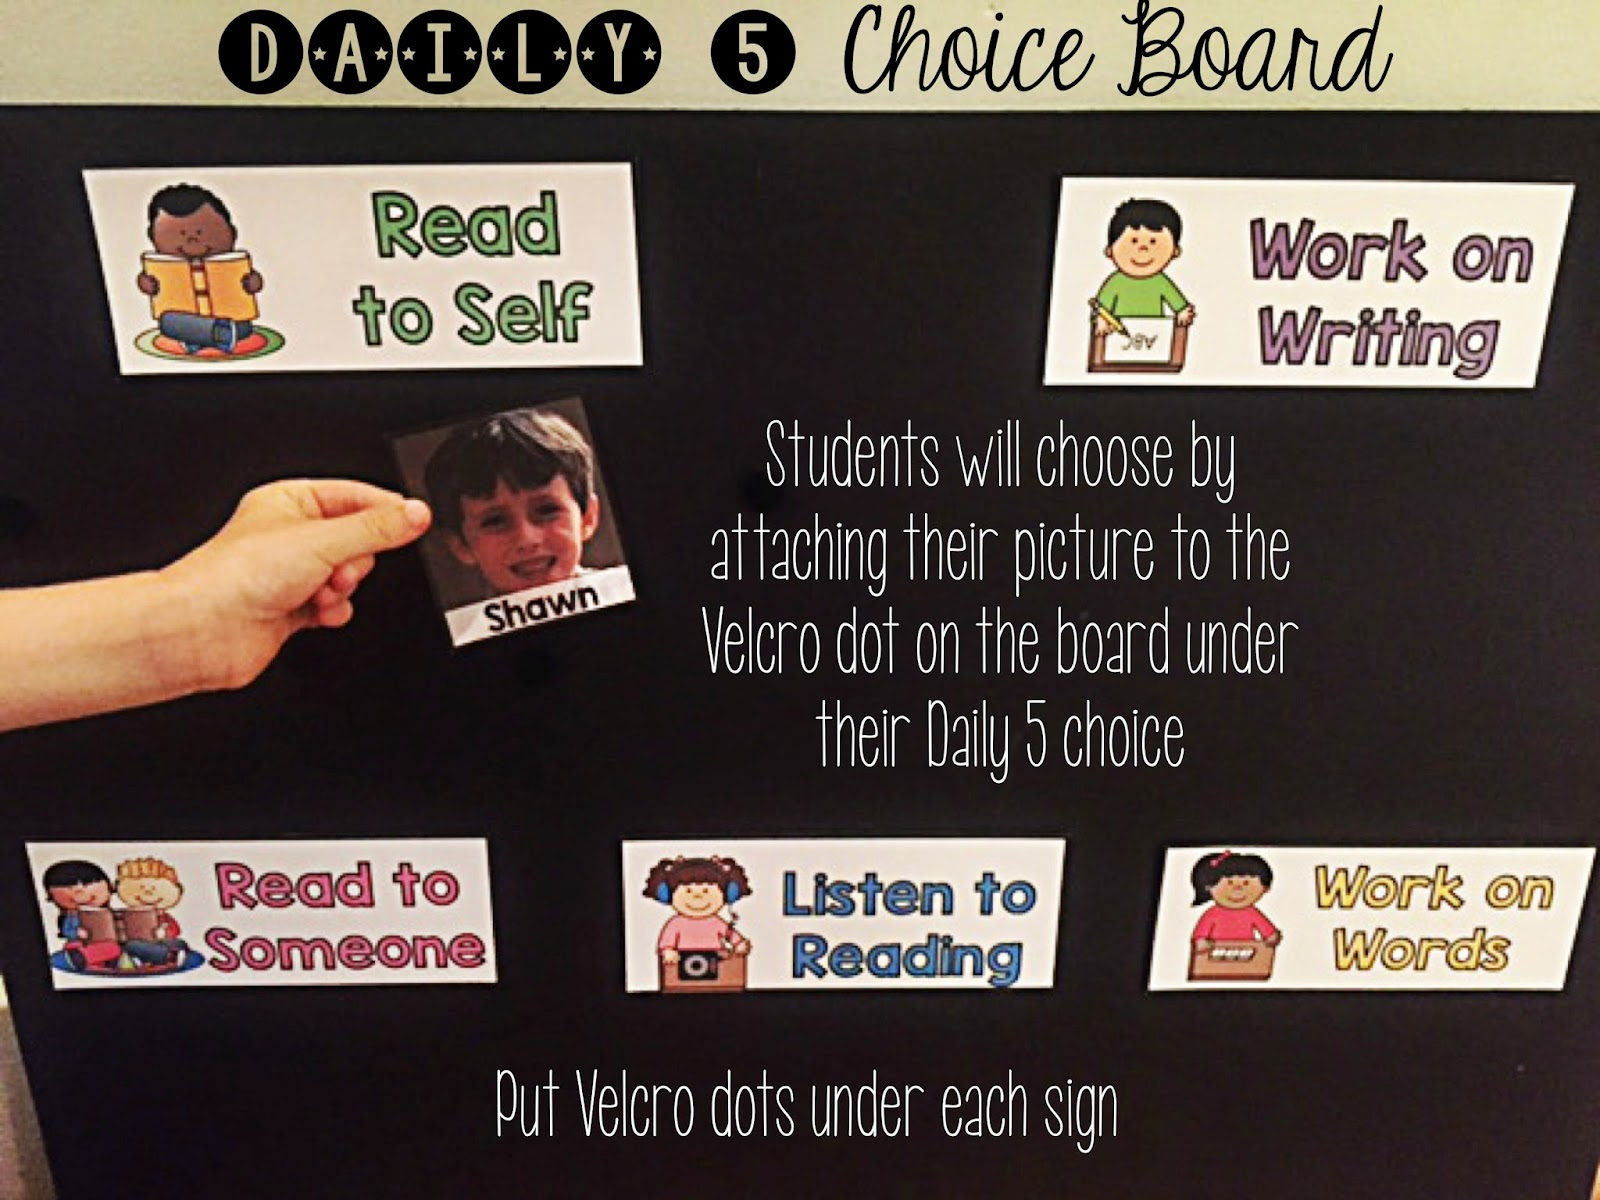 Daily 5 choice board